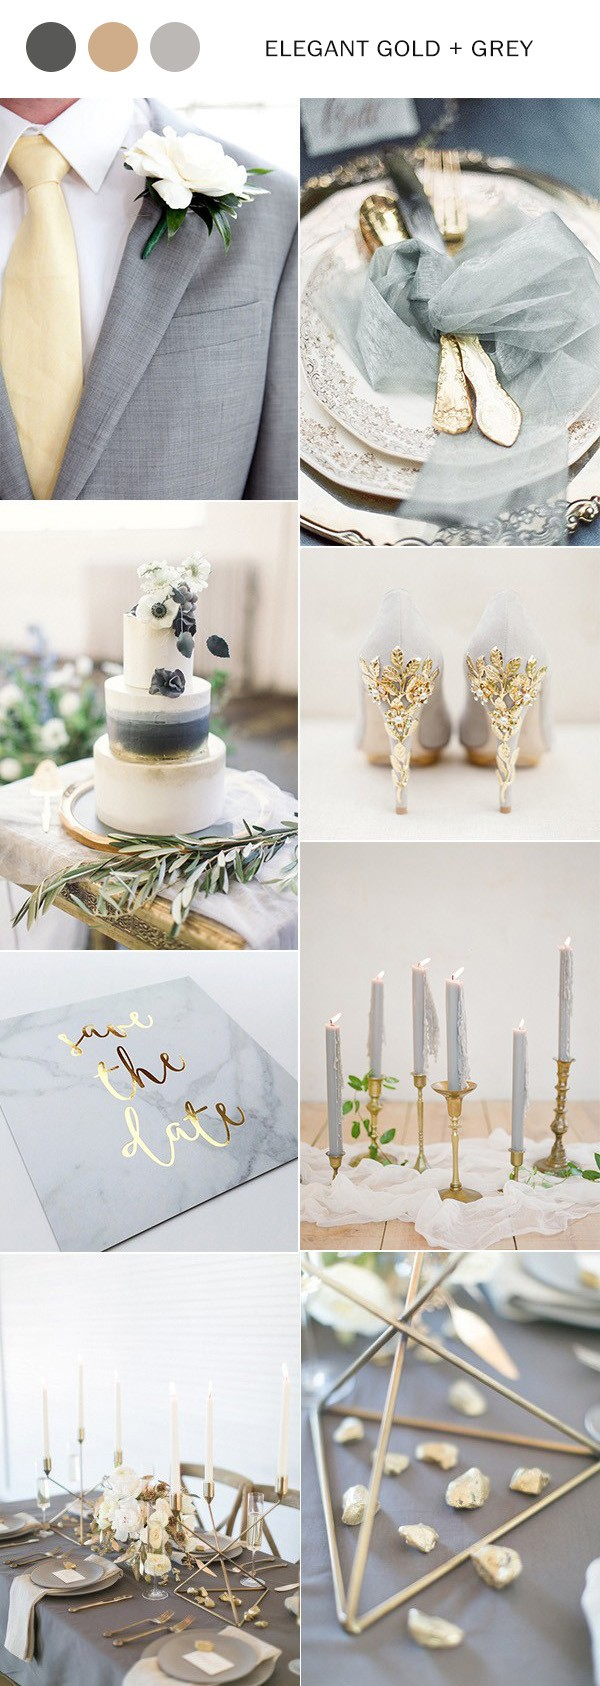 elegant gold and grey wedding color ideas for 2018